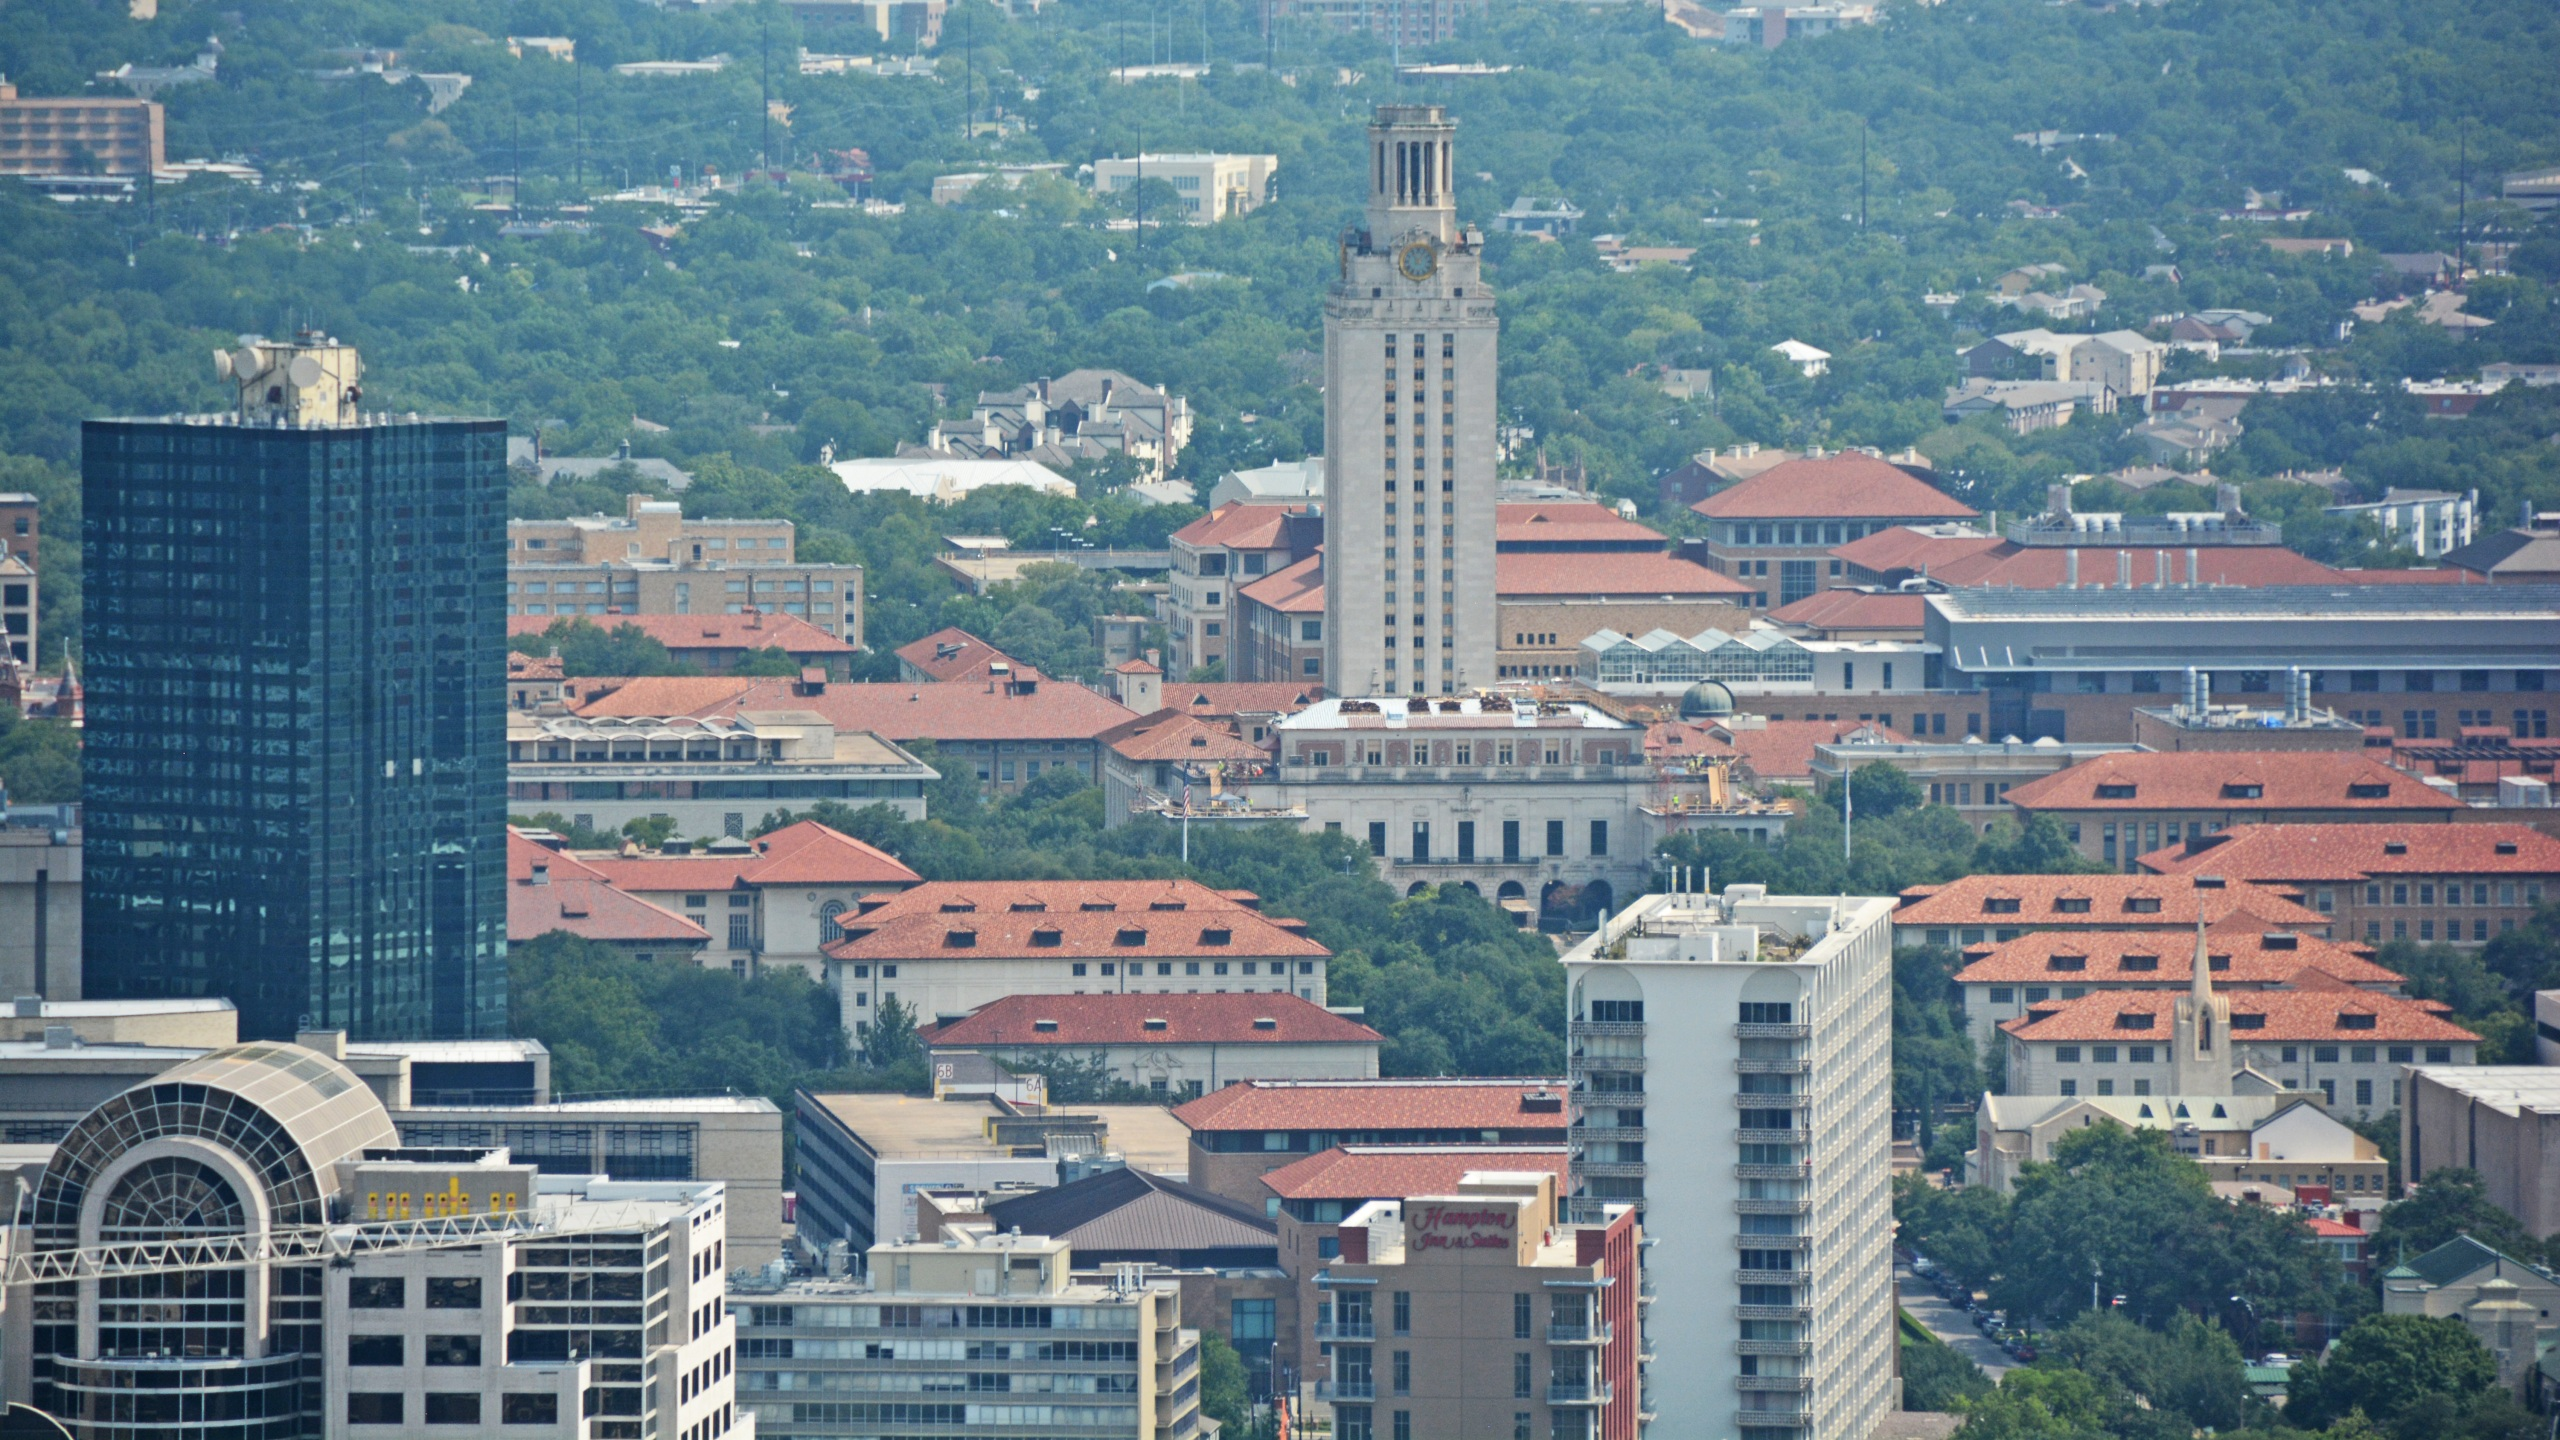 ut austin ut tower kxan-54787063